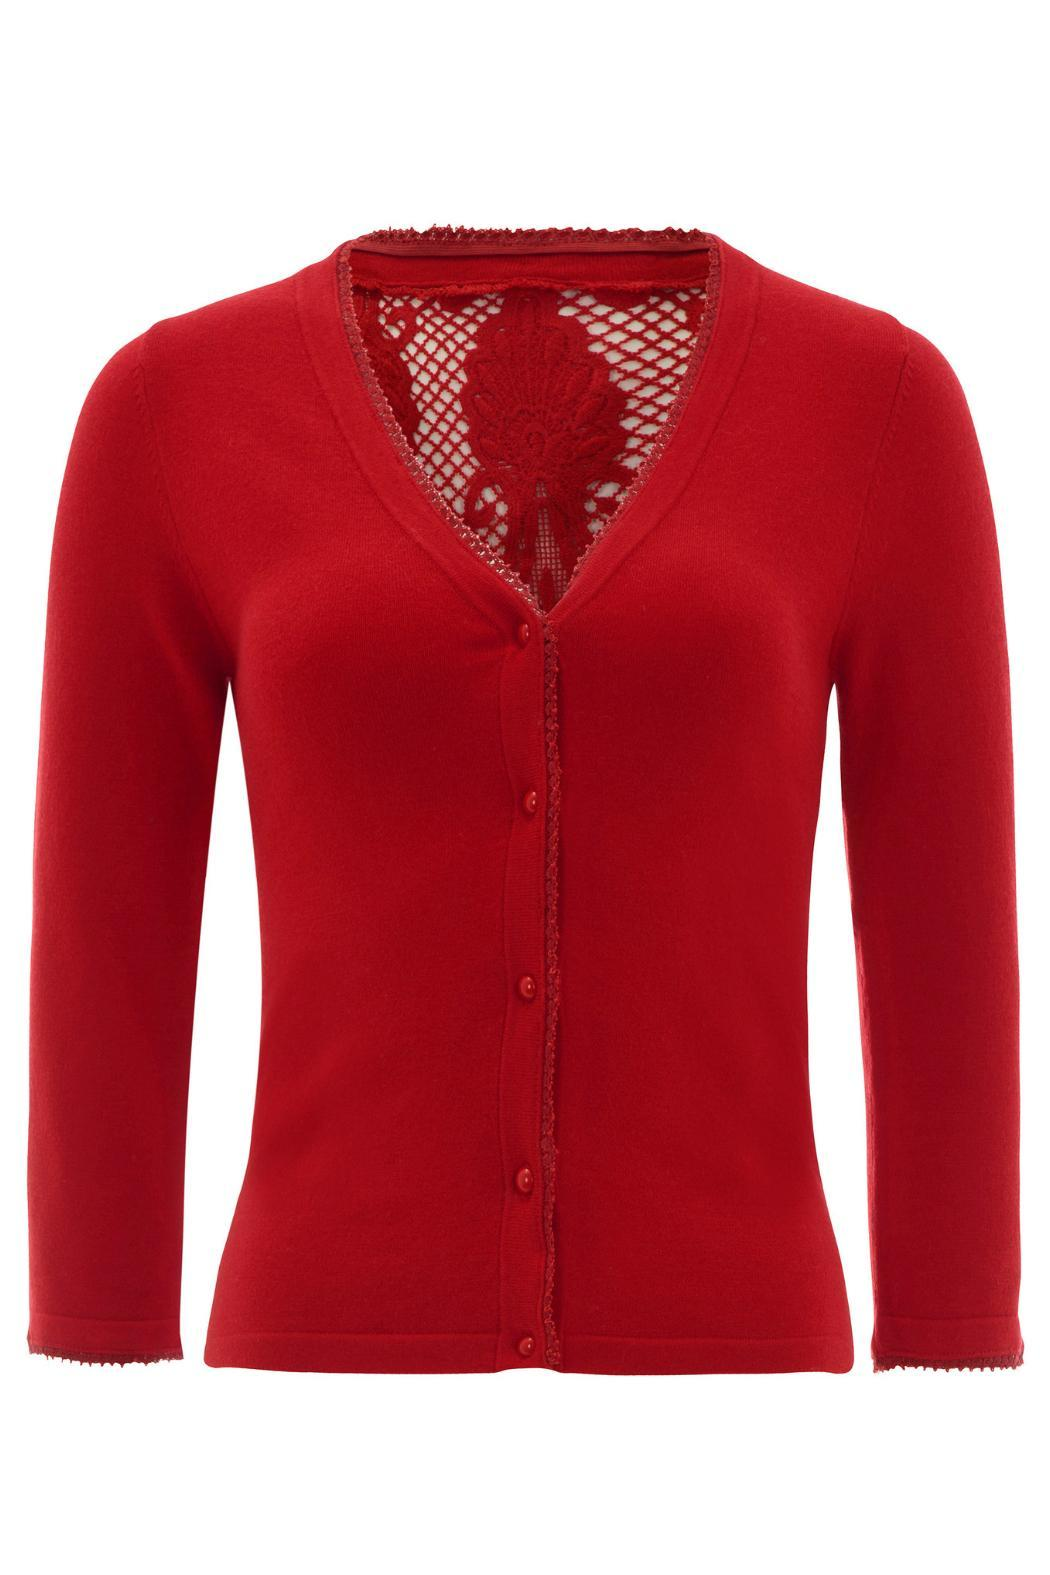 Wolf & Whistle Lace Back Cardigans from Crouch End by Scarecrow ...